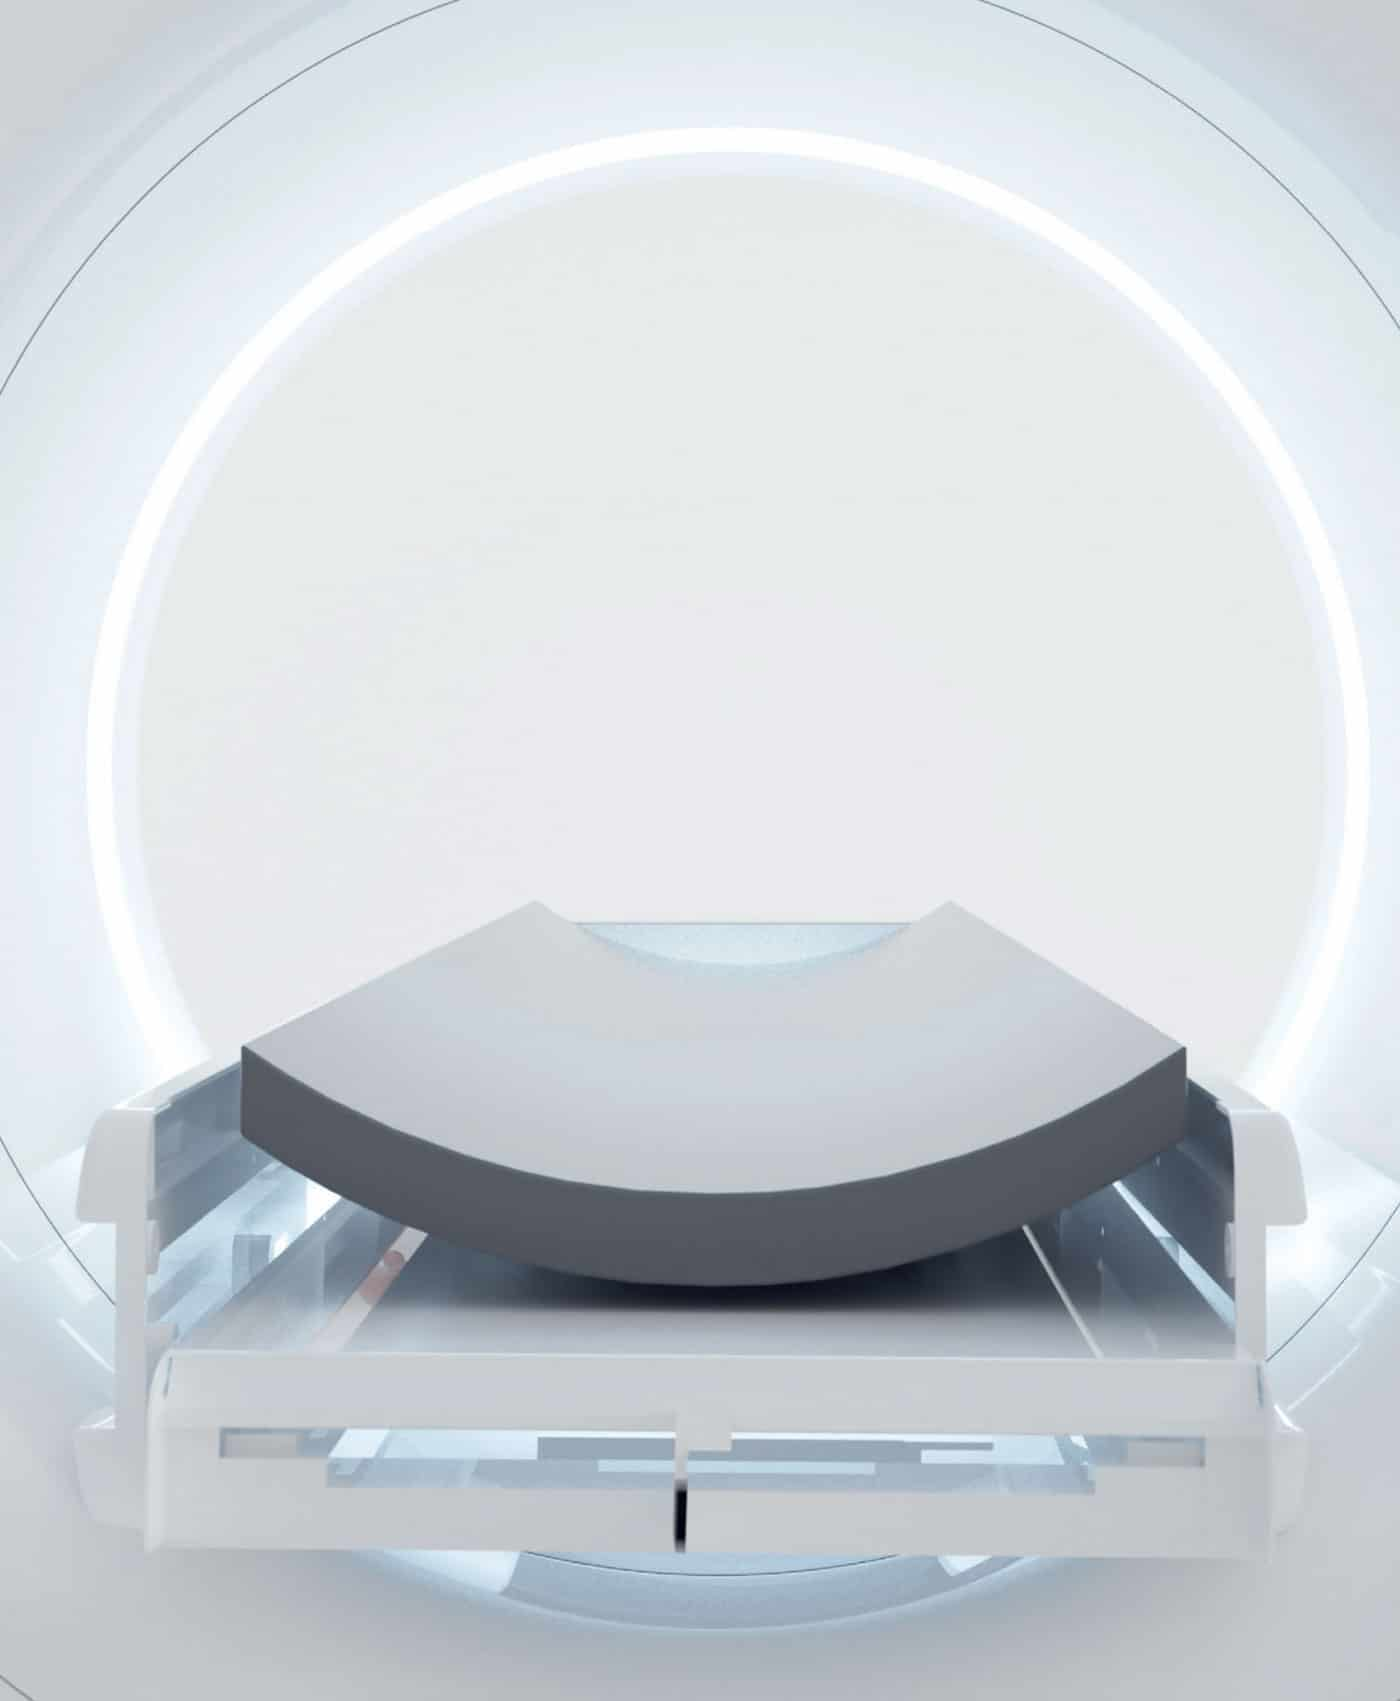 picture of the 3T MRI